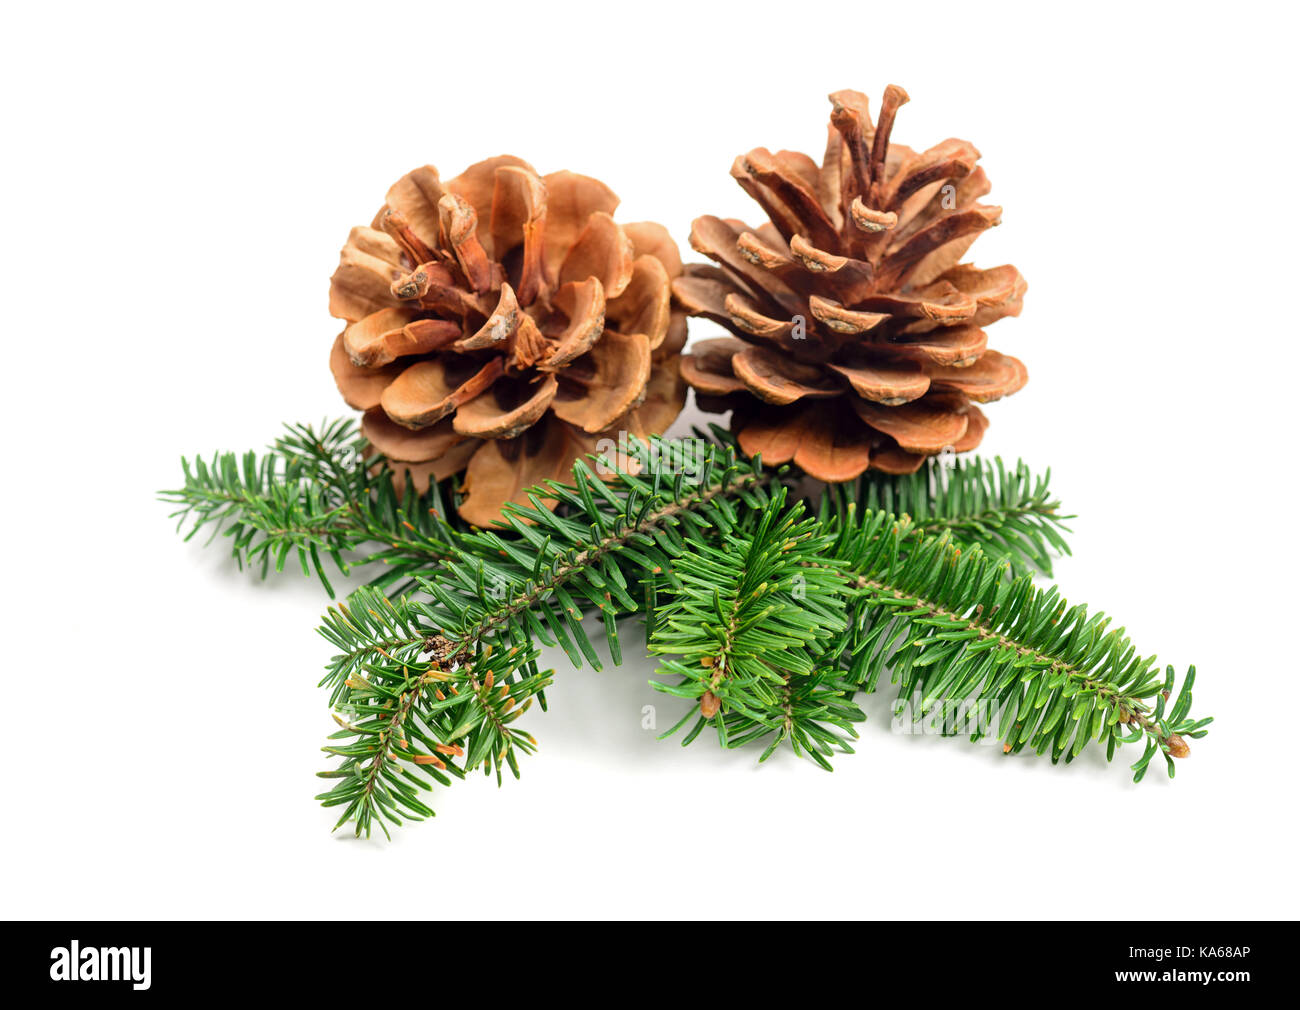 evergreen tree Christmas pine cones with branch on a white background. Decorate element - Stock Image